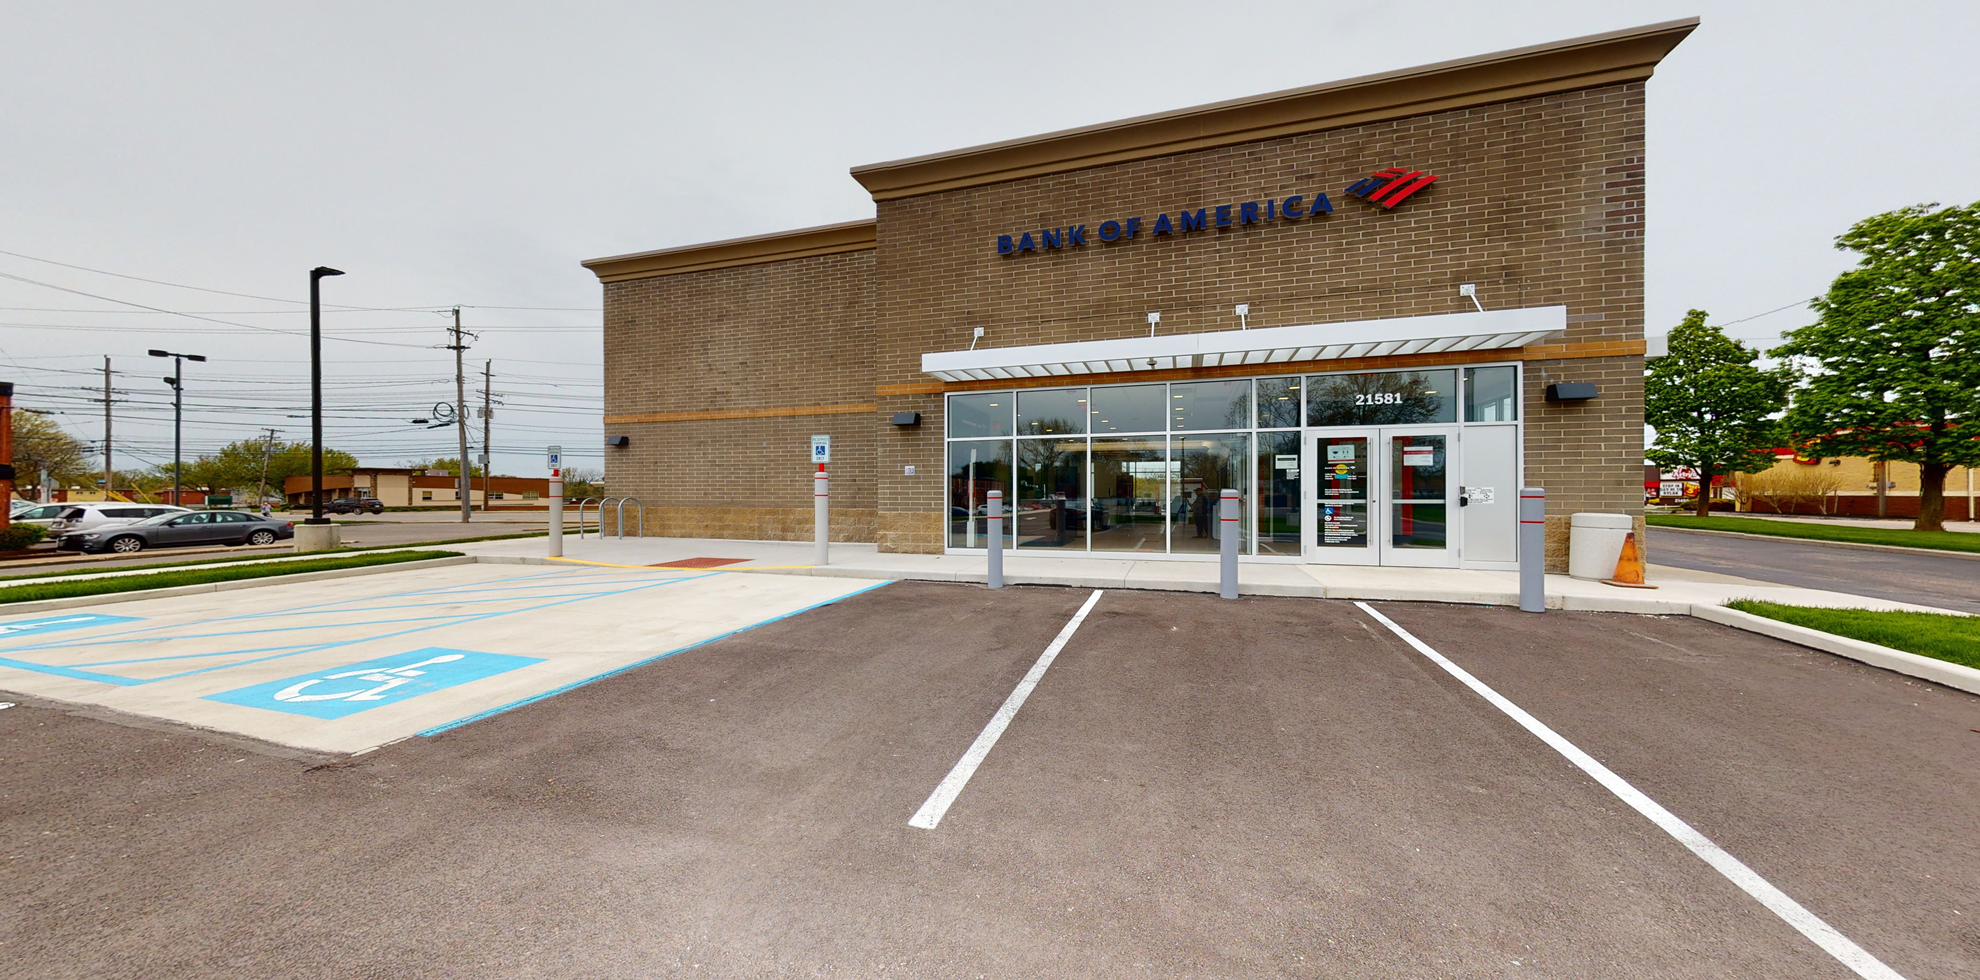 Bank of America financial center with drive-thru ATM   21581 Center Ridge Rd, Rocky River, OH 44116